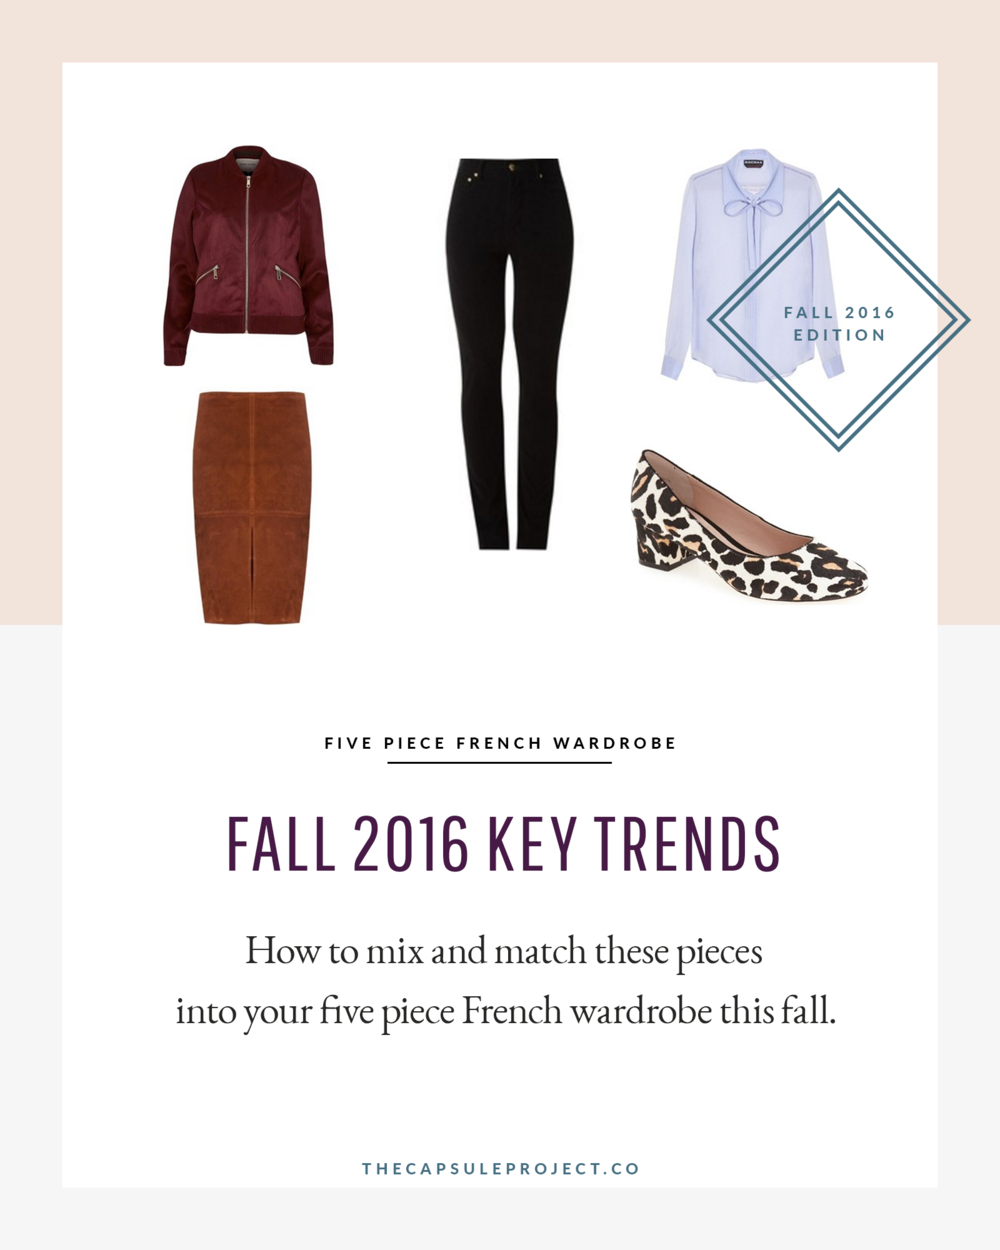 Mix and match these five pieces into your 5 piece French wardrobe this fall.